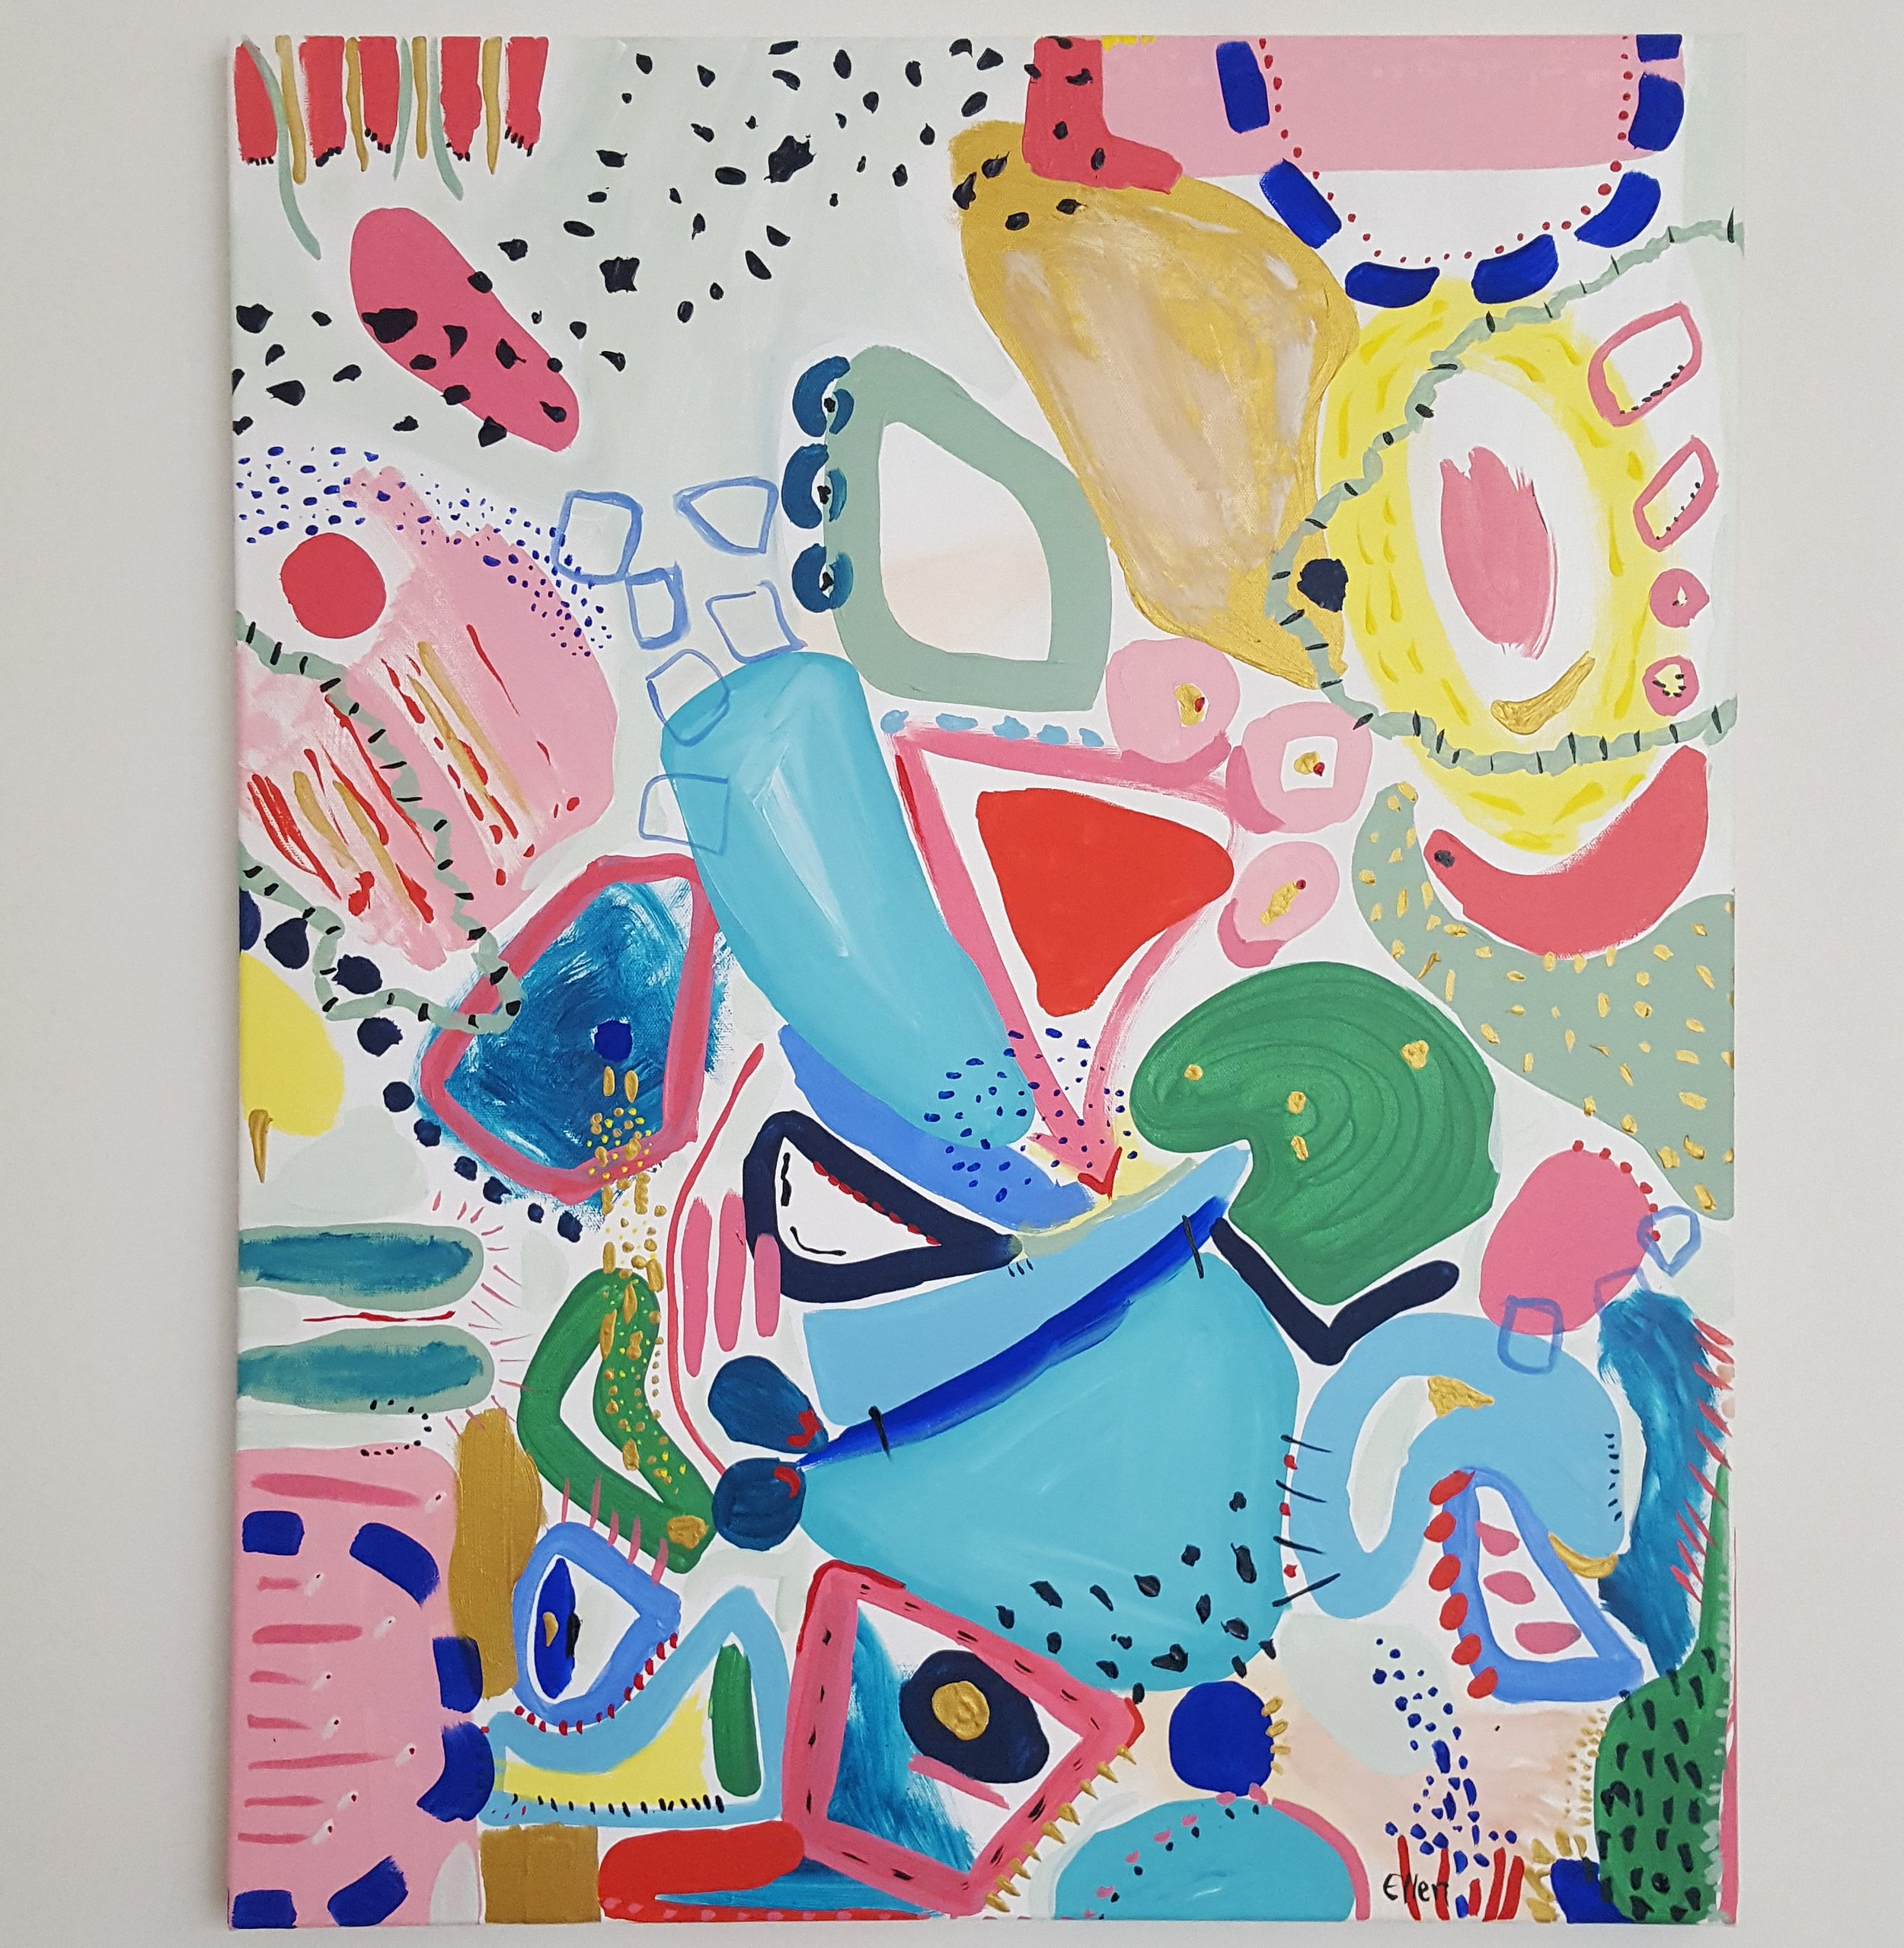 EXHIBITING AT CAMBERWELL ART SHOW JUNE 2019 'Seeing Colours' Acrylic on Canvas, approx 600mm x 740mm $340